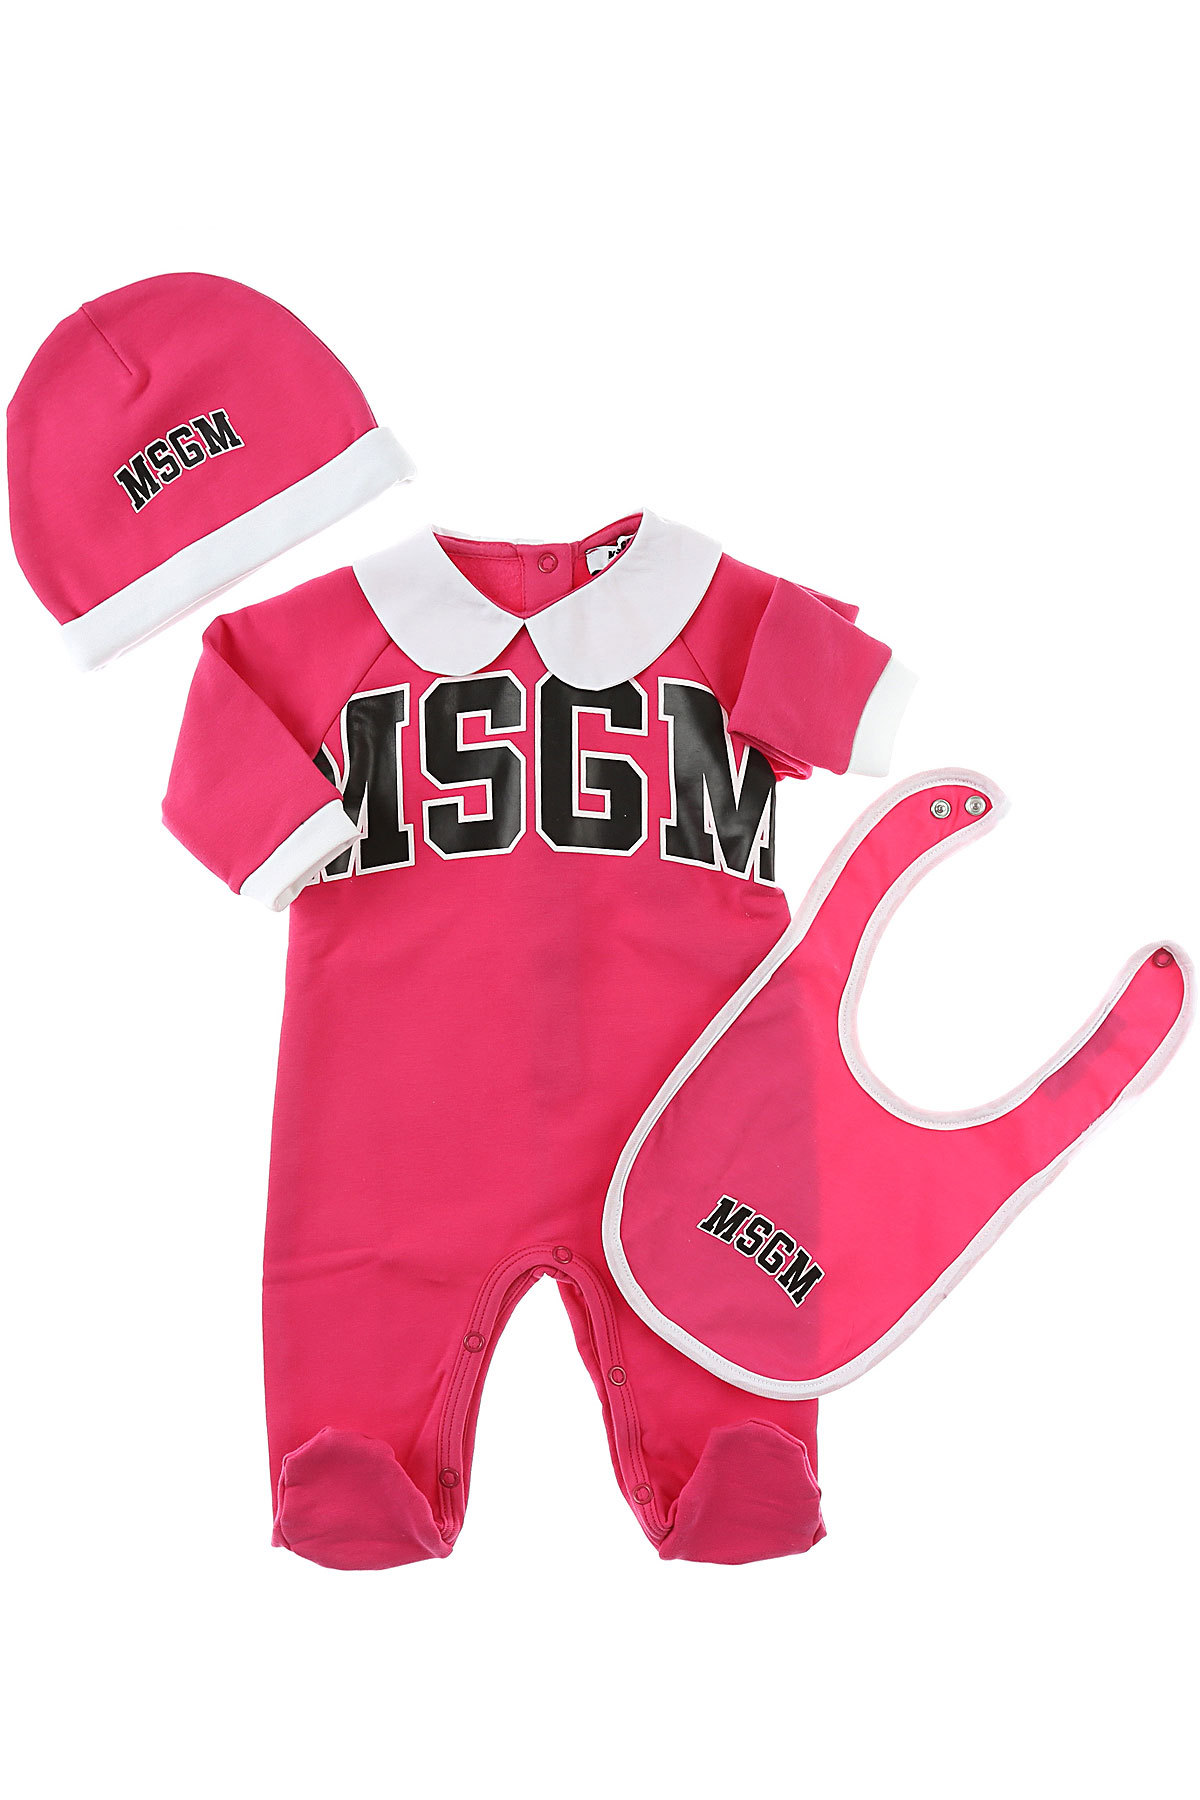 Image of MSGM Baby Sets for Girls, Fuchsia, Cotton, 2017, 12M 18M 6M 9M